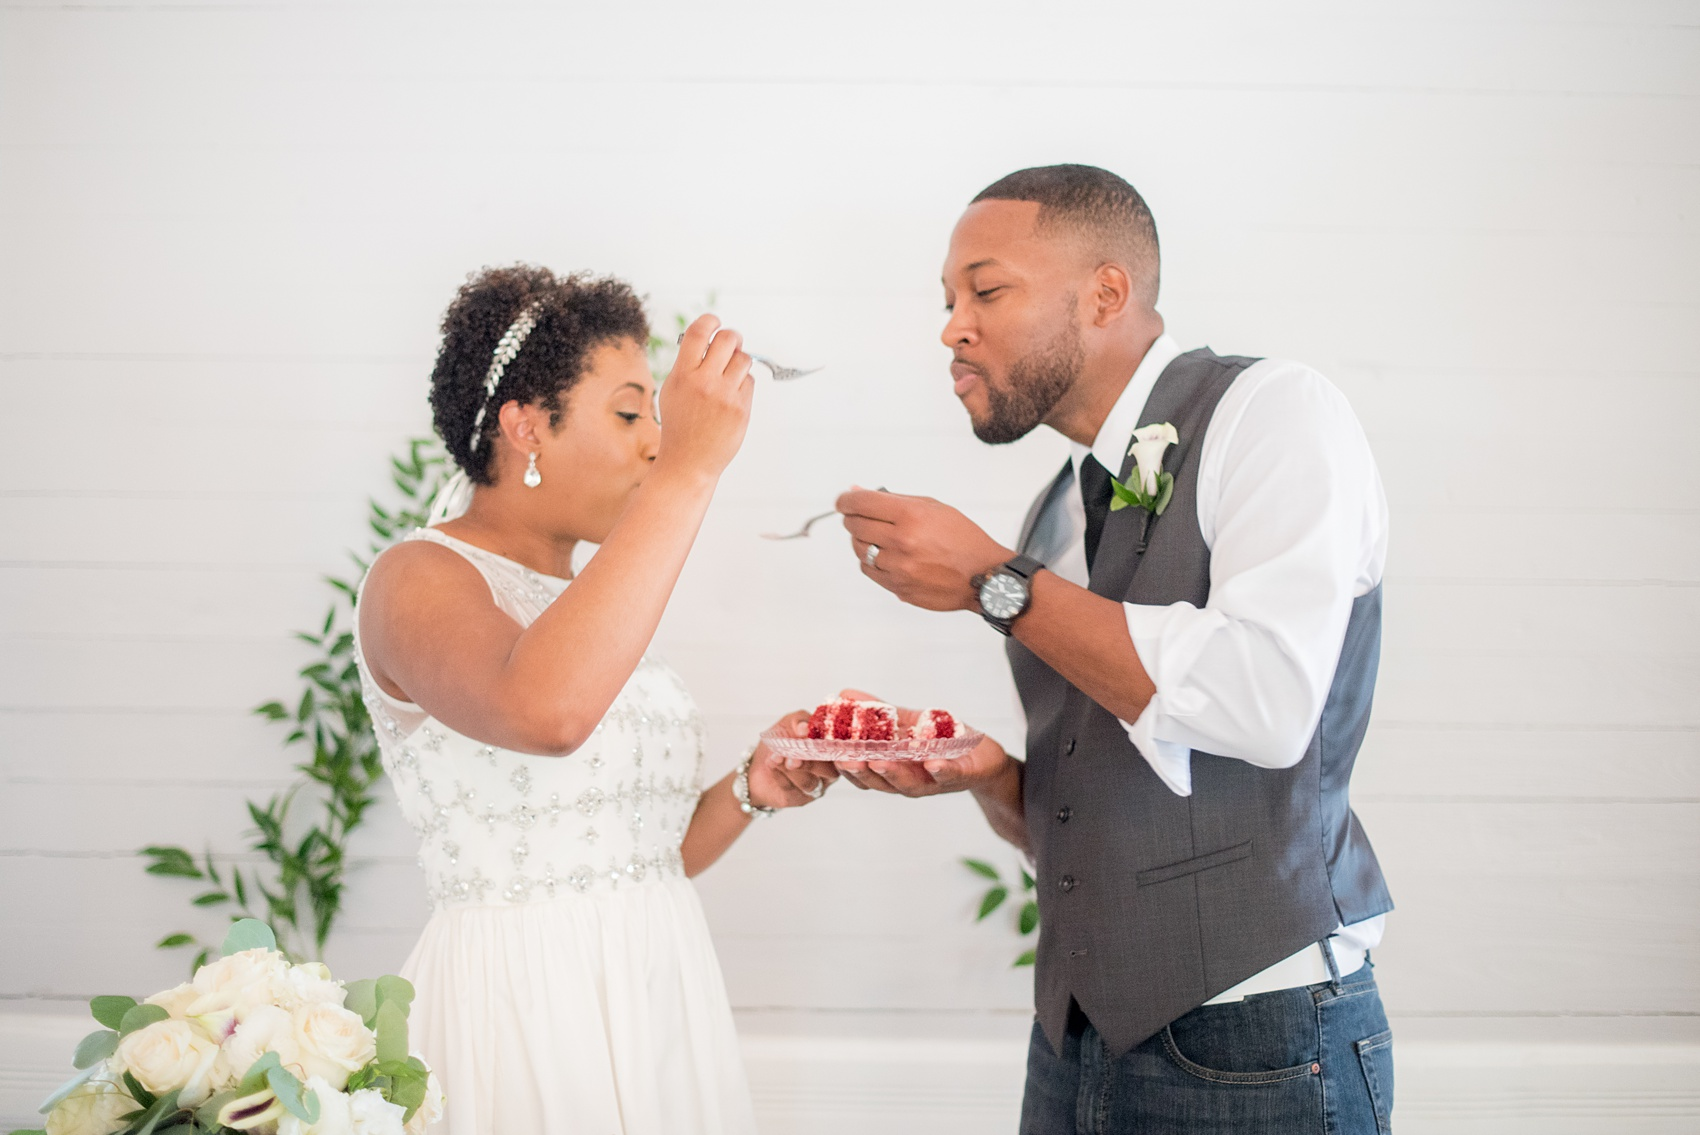 Mikkel Paige Photography pictures of a wedding at Leslie-Alford Mim's House in North Carolina for a Mad Dash Weddings event. Photo of the couple's cake cutting and red velvet cake.